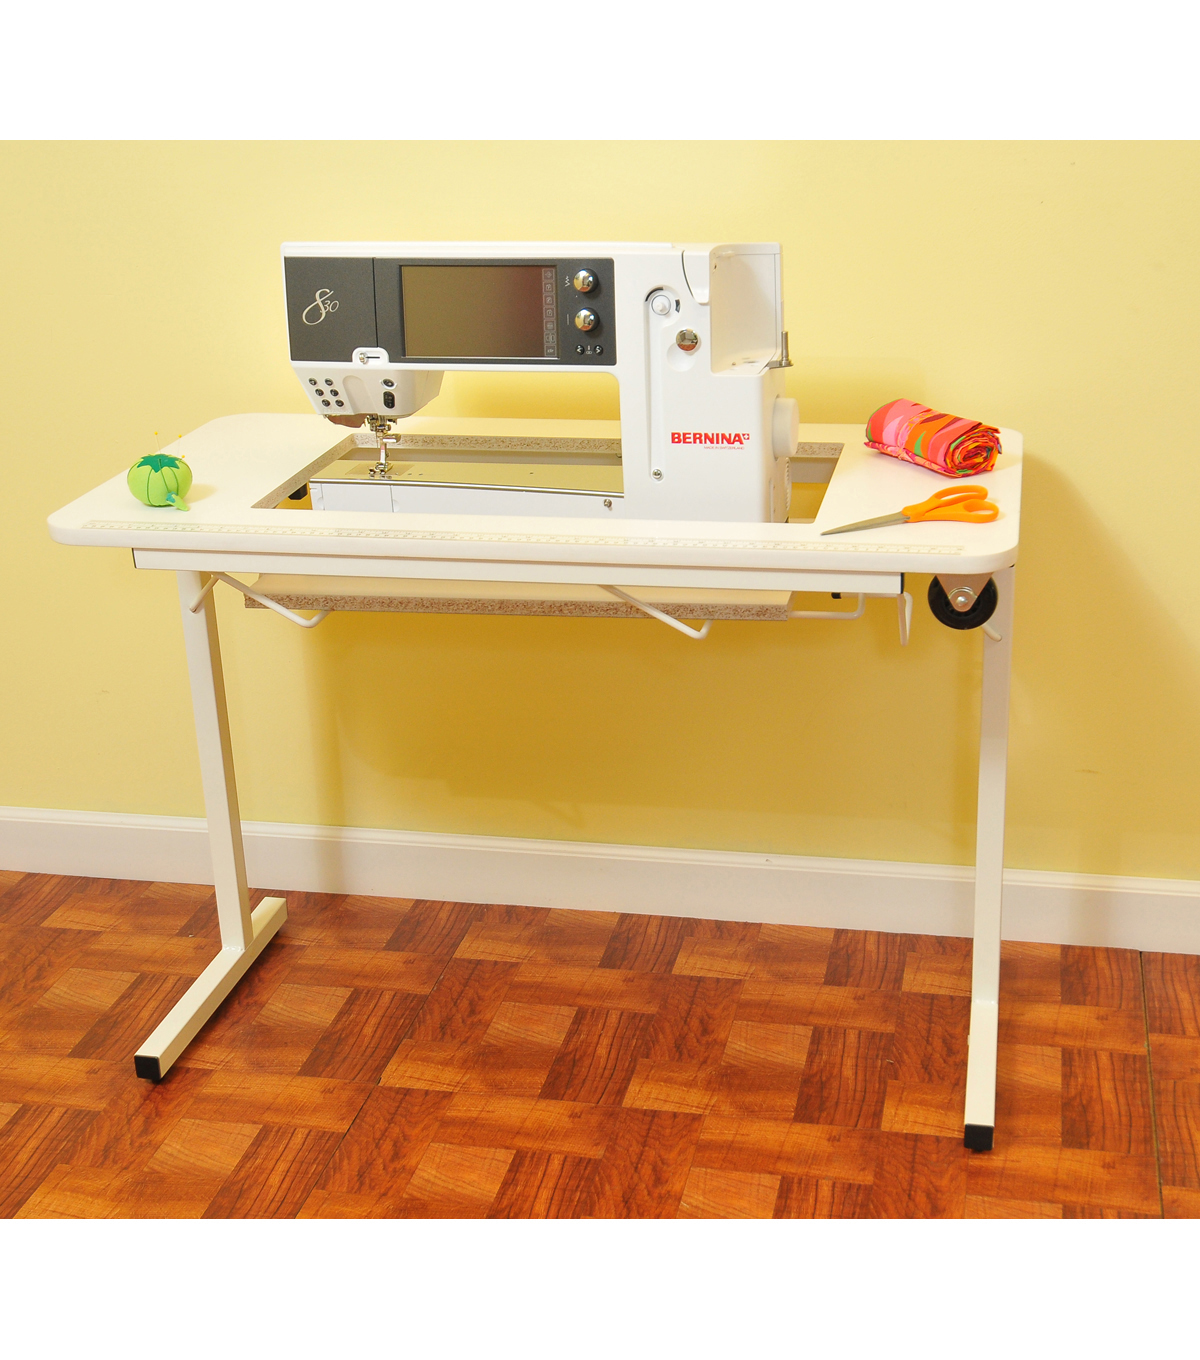 Sewing Table On Wheels.Arrow Homespun Sewing Table With Wheels White